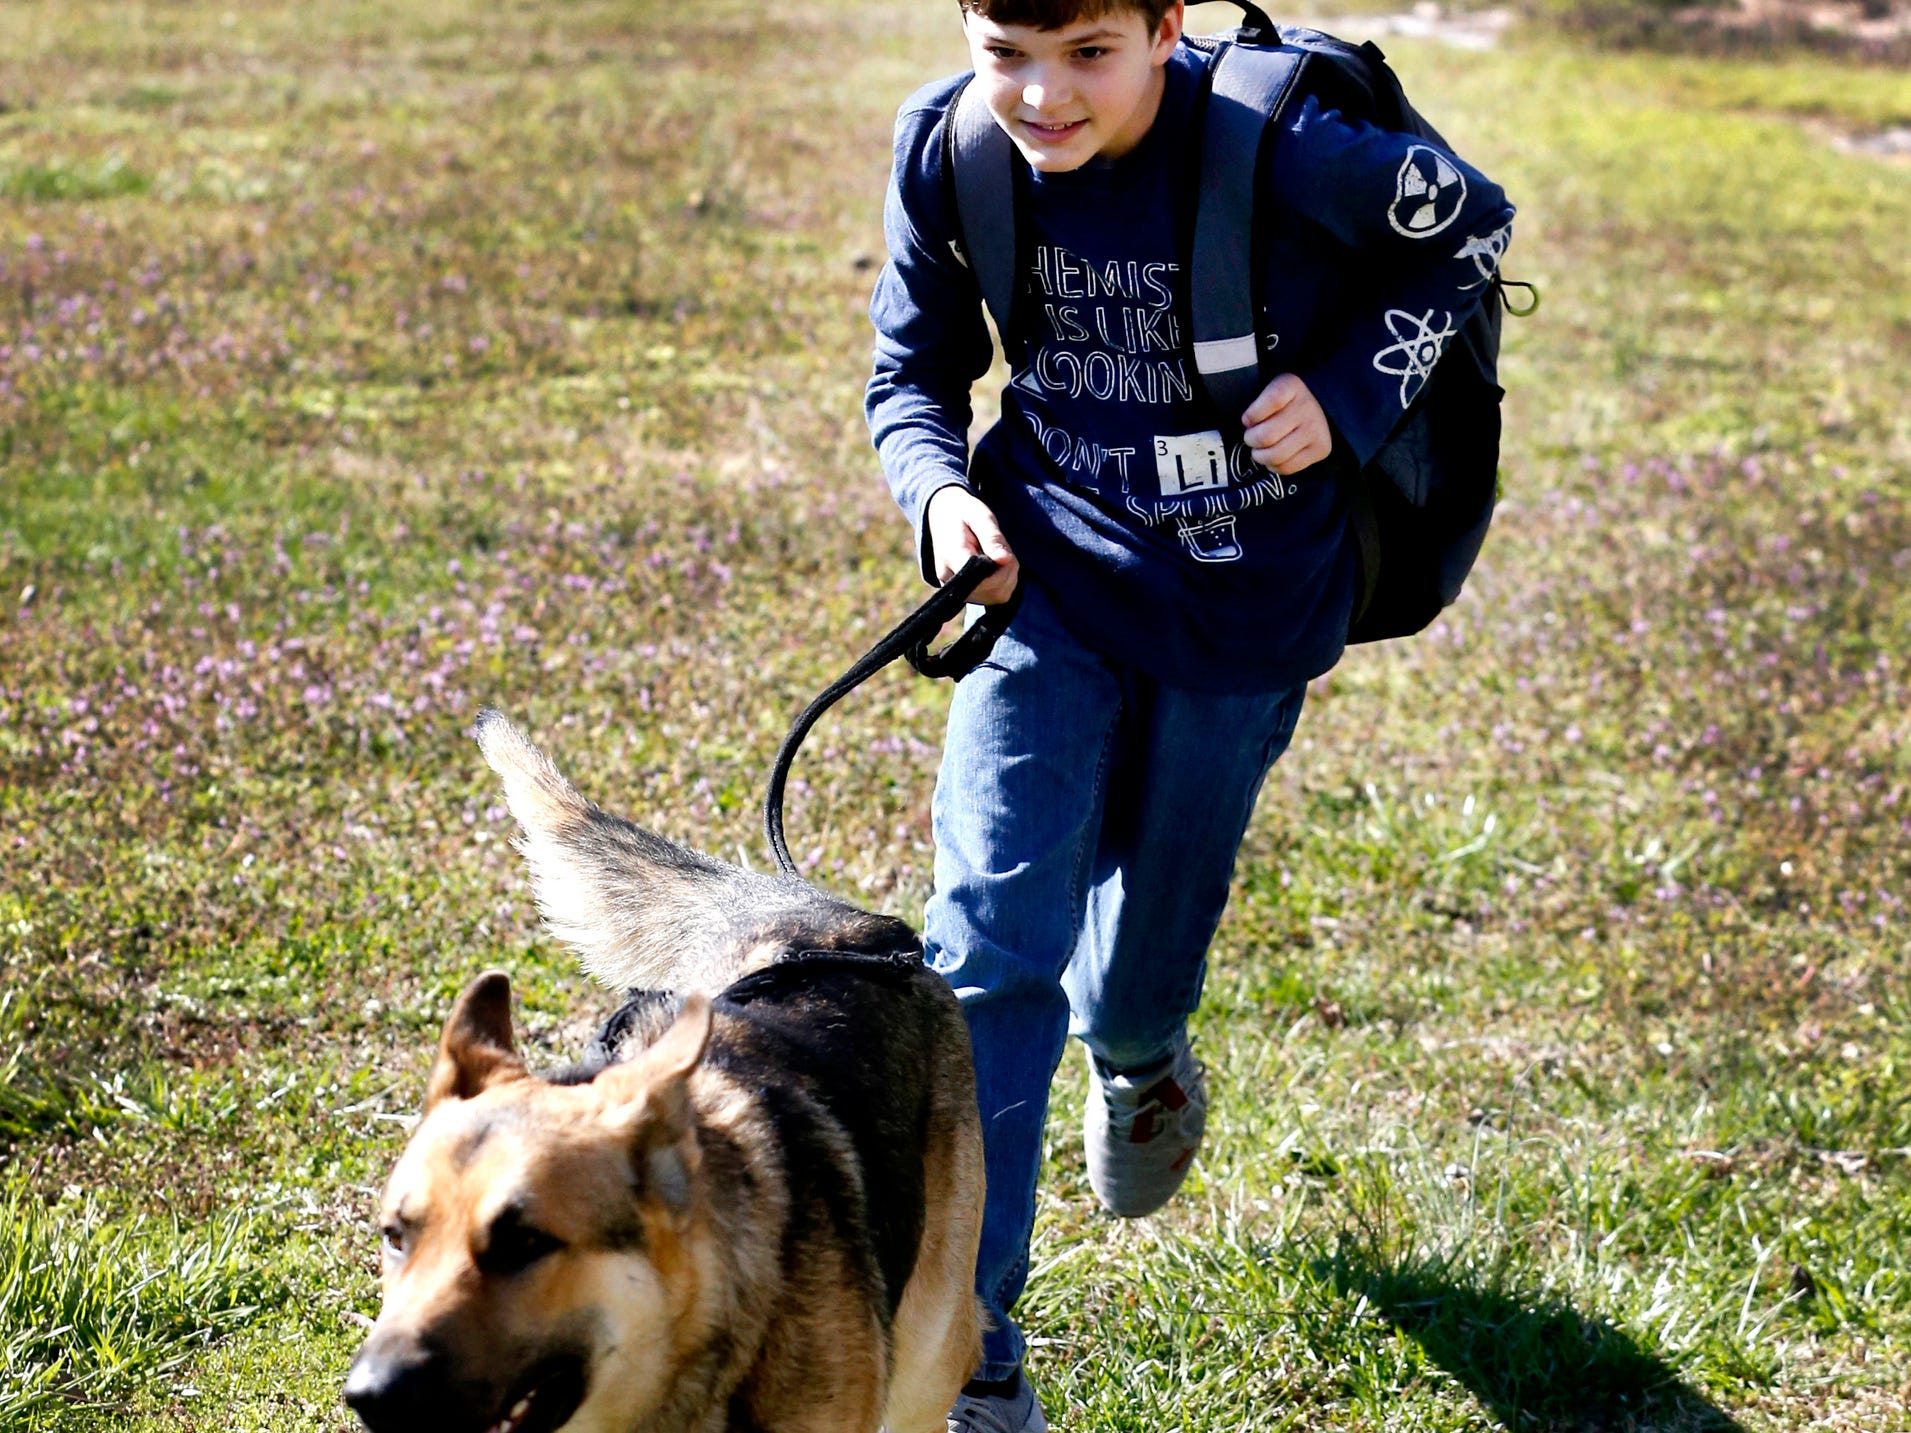 Justin White, 10, runs to his home with his dog Goblin, on Tuesday, March 19, 2019, after Goblin greeted him after getting off the school bus.